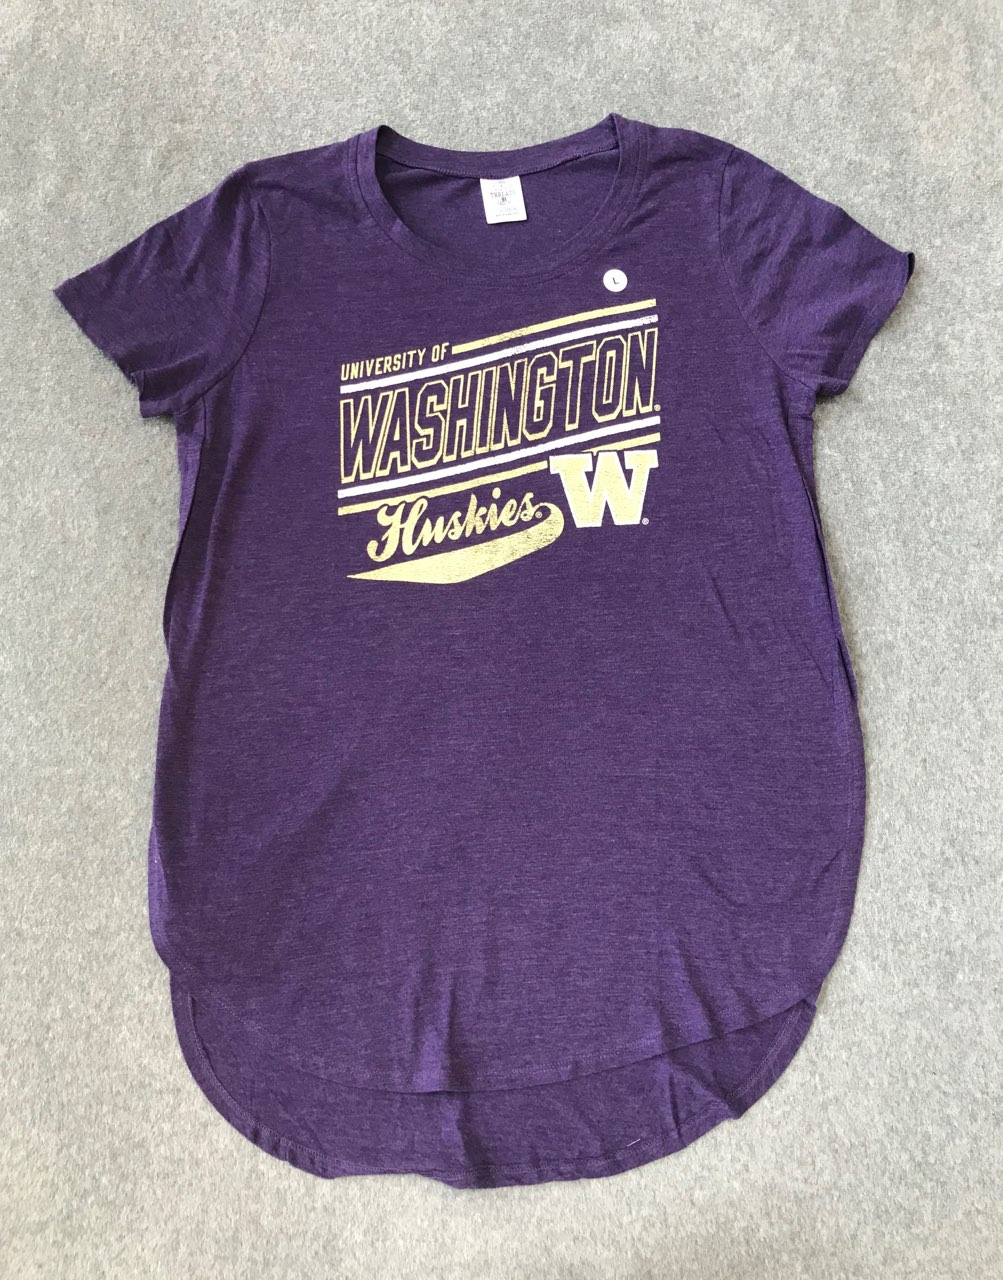 UW Ladies tee size Large NWT